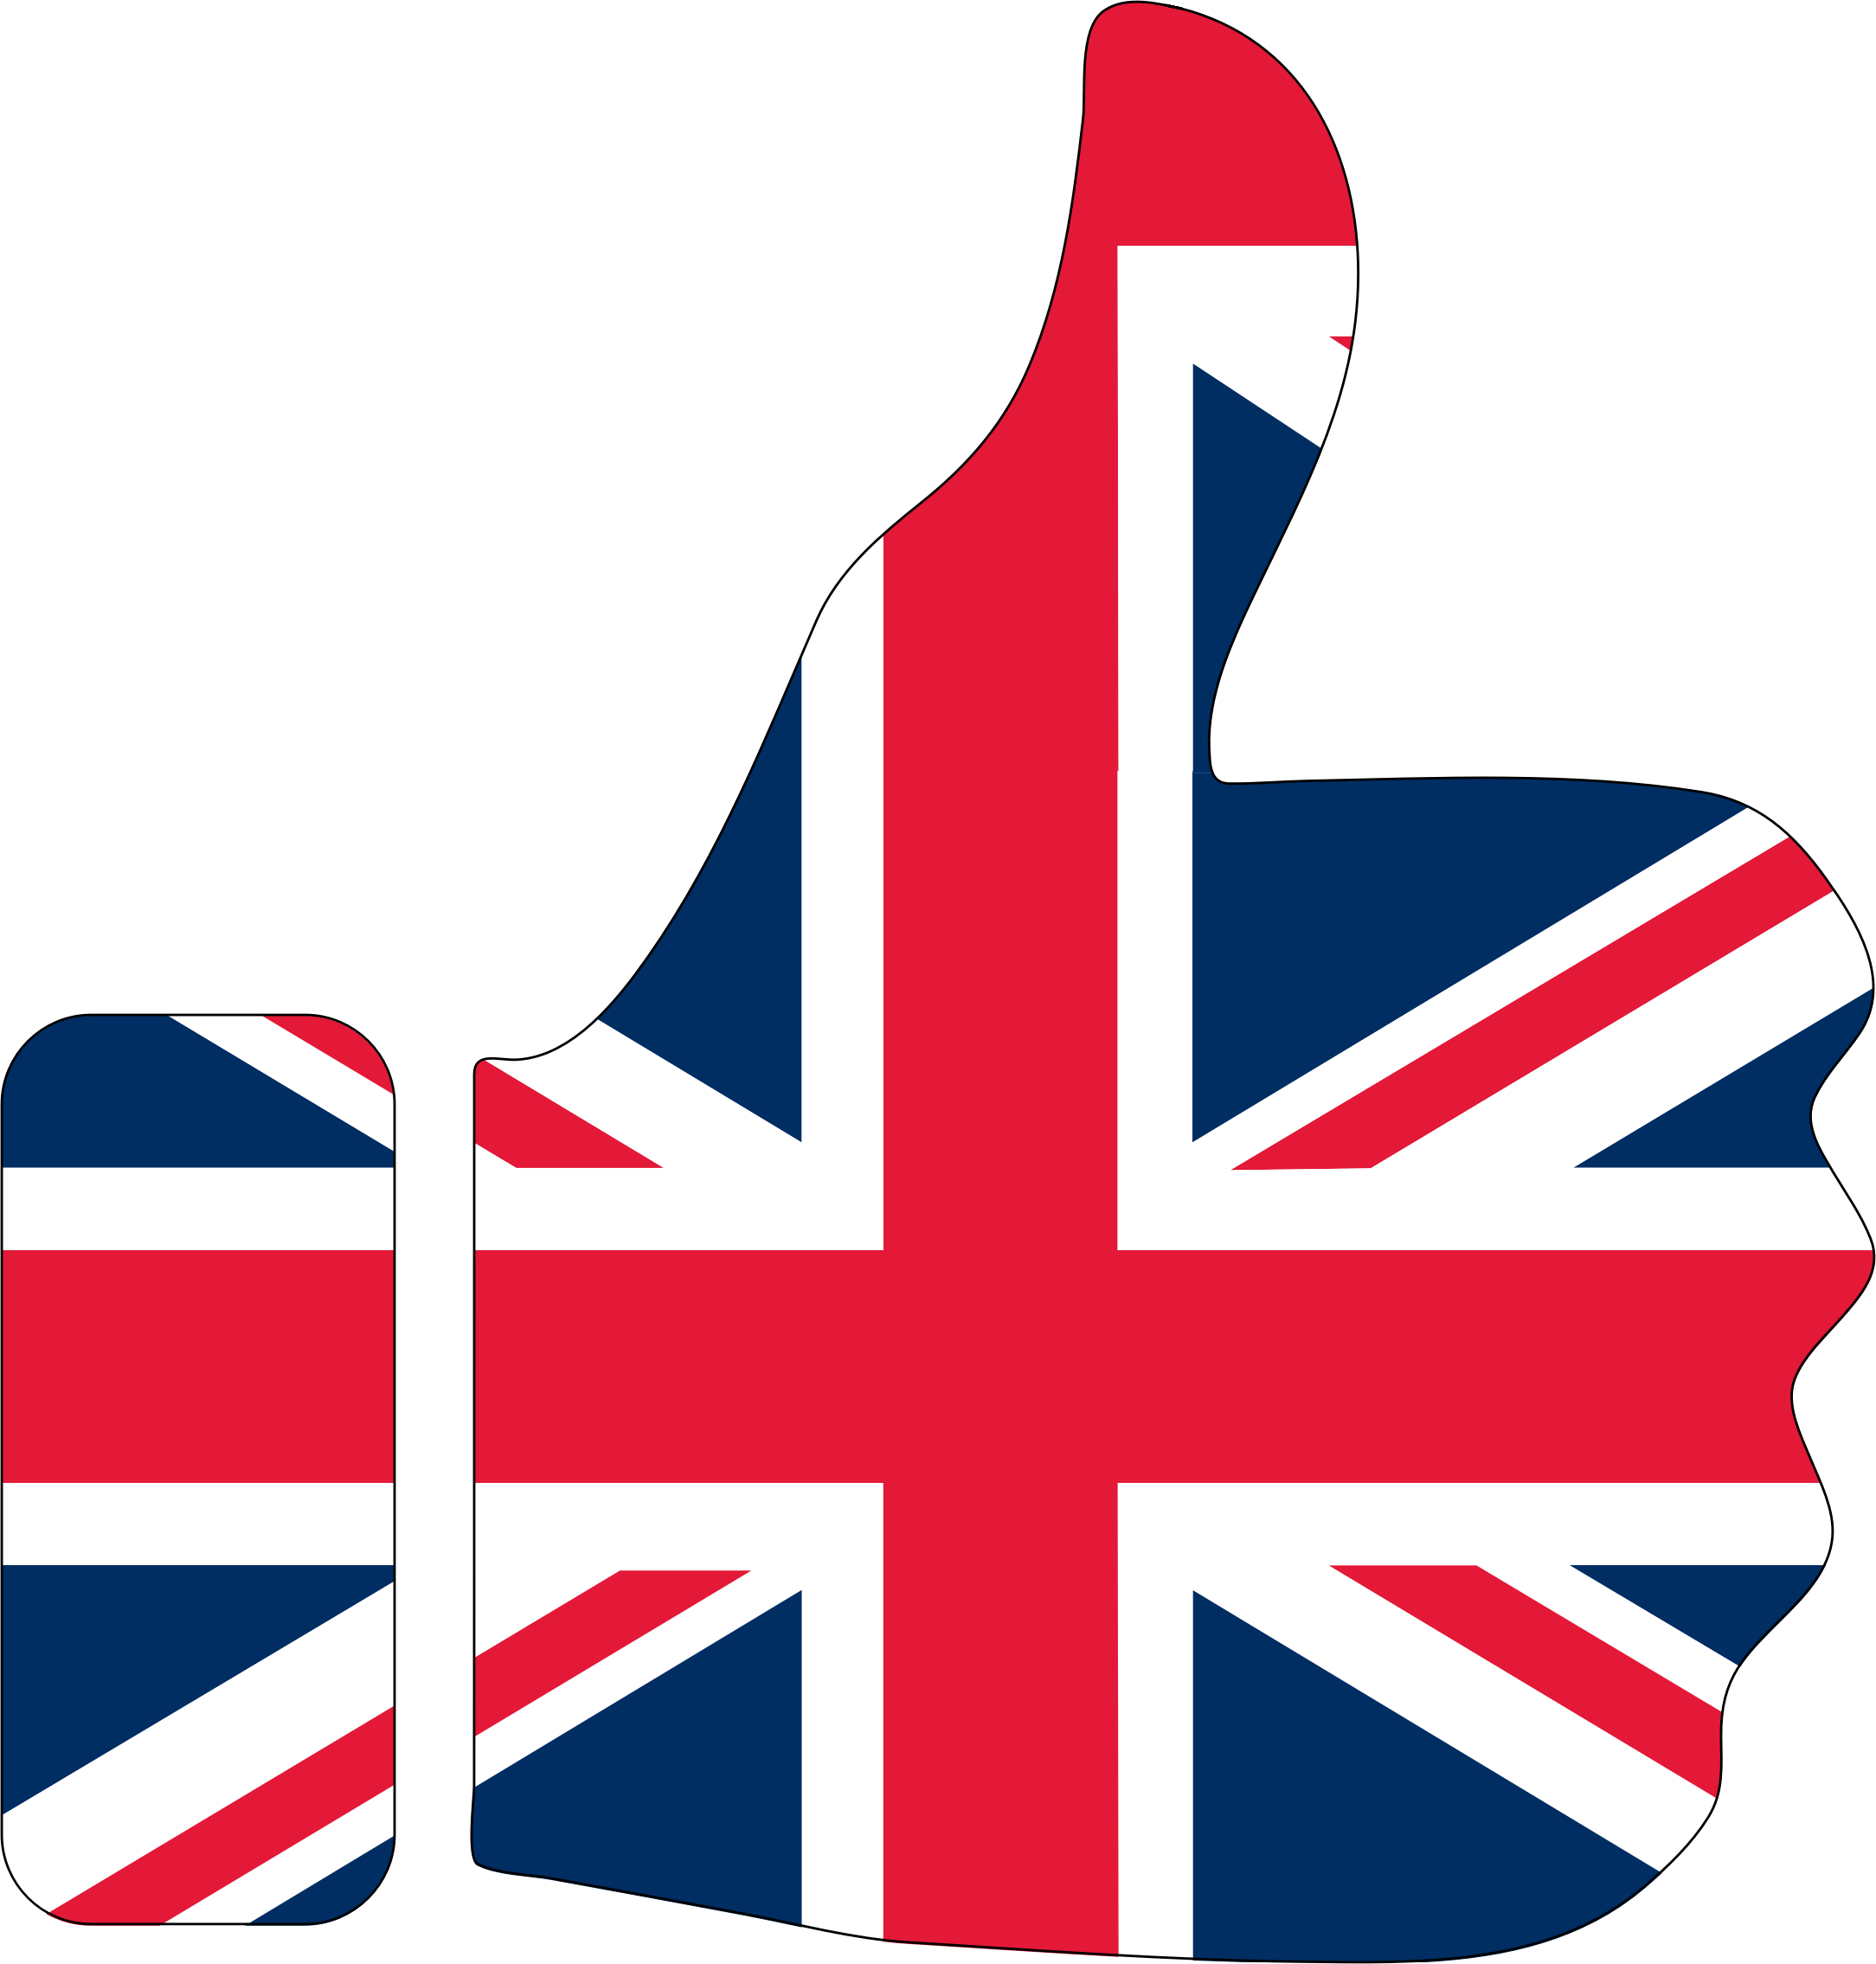 Thumbs Up United Kingdom Britain With Stroke by GDJ